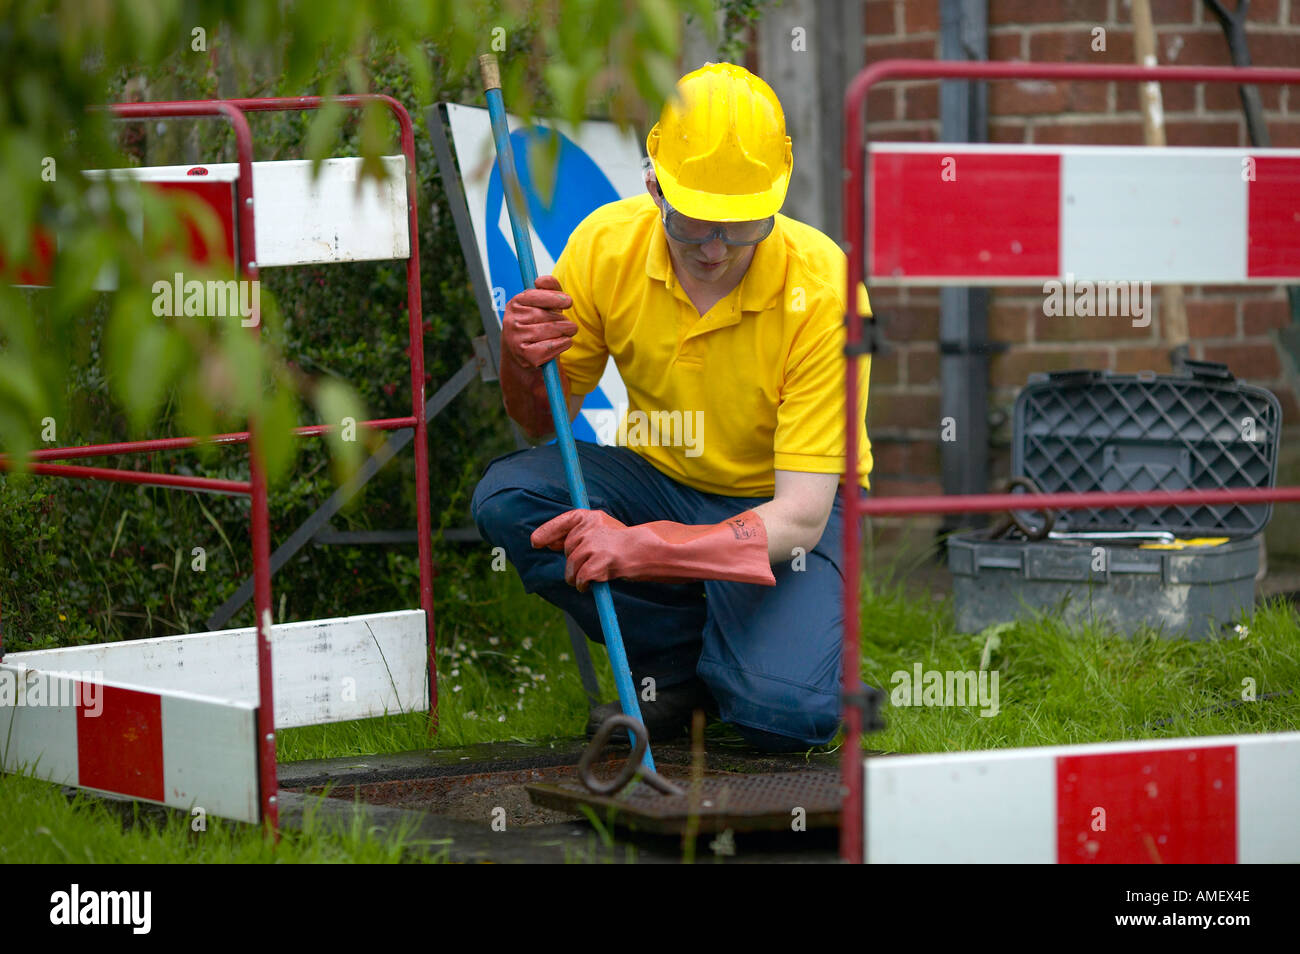 Man cleaning drains - Stock Image